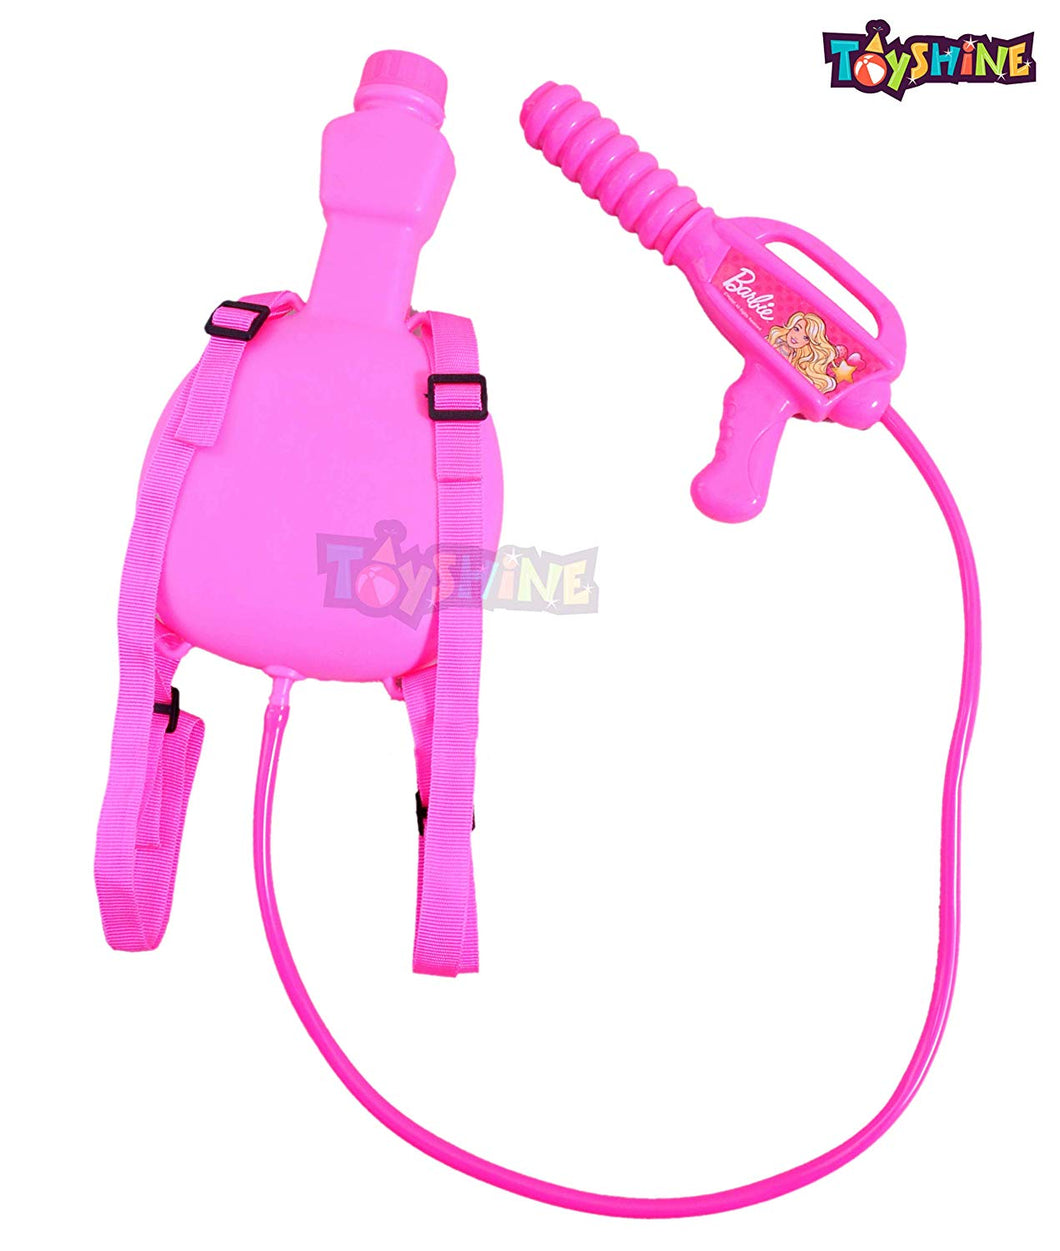 Toyshine Holi Water Gun with Pressure with Back Bottle Holding Tank (1.0L) - BFF Pink